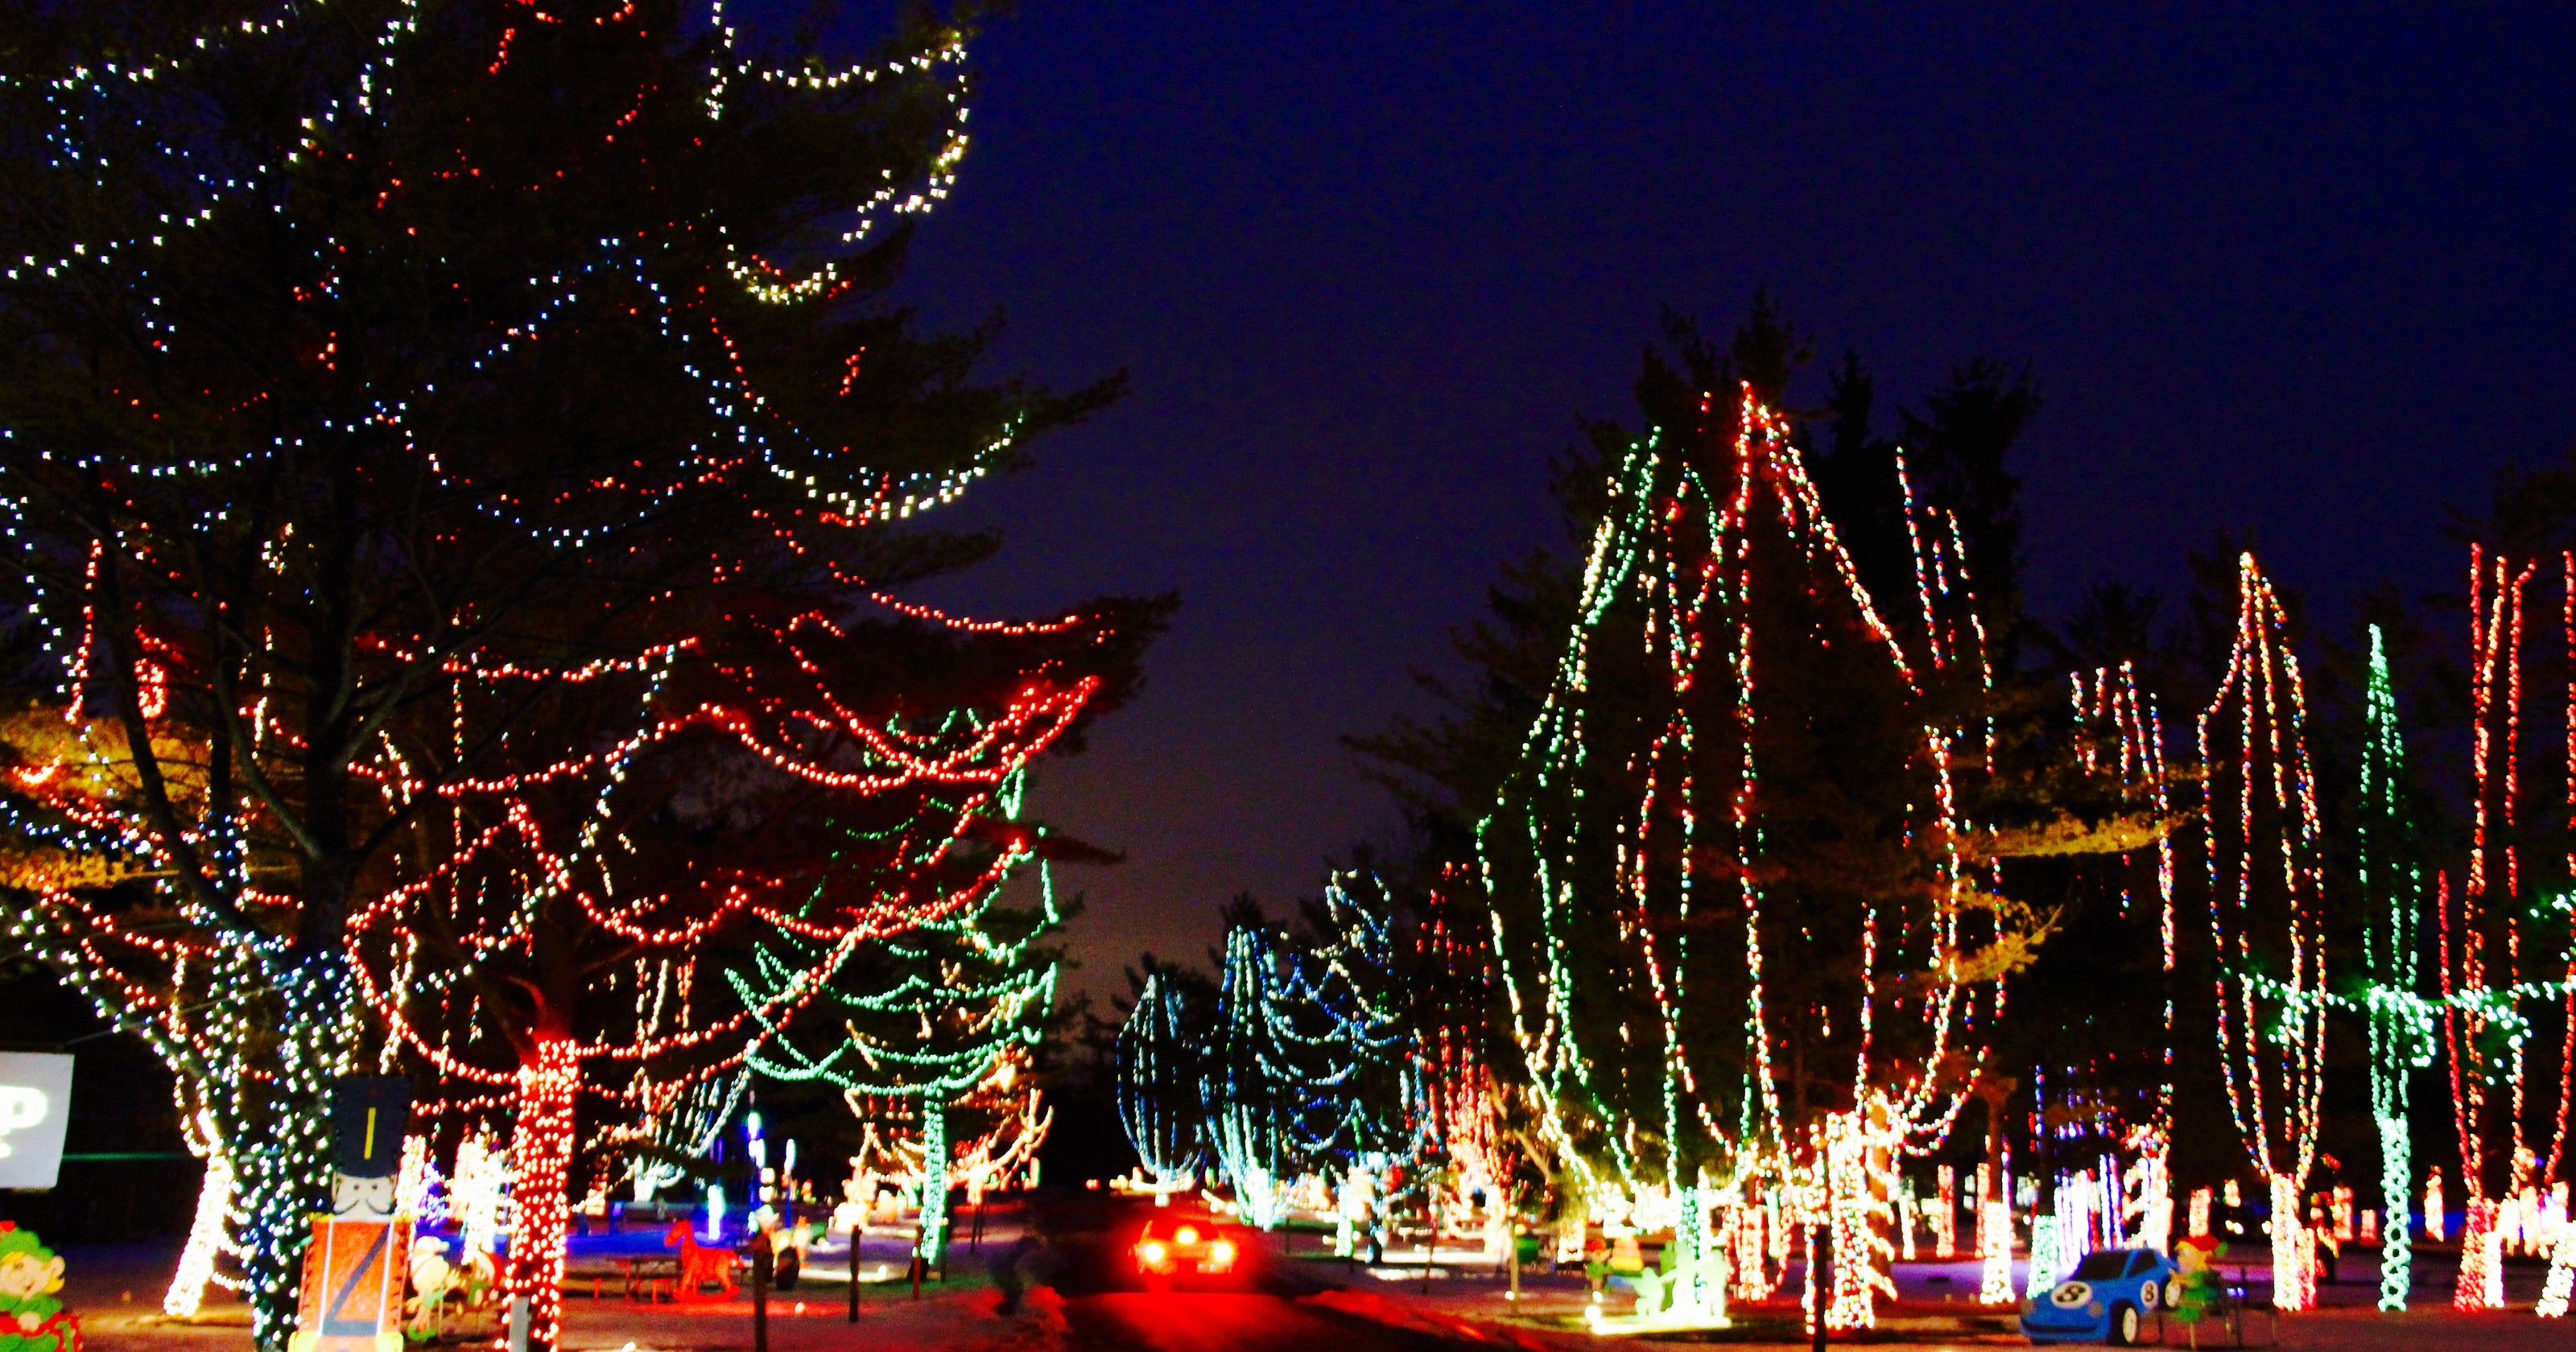 Wisconsin Carnival of Lights in Jellystone Park opens for the holidays